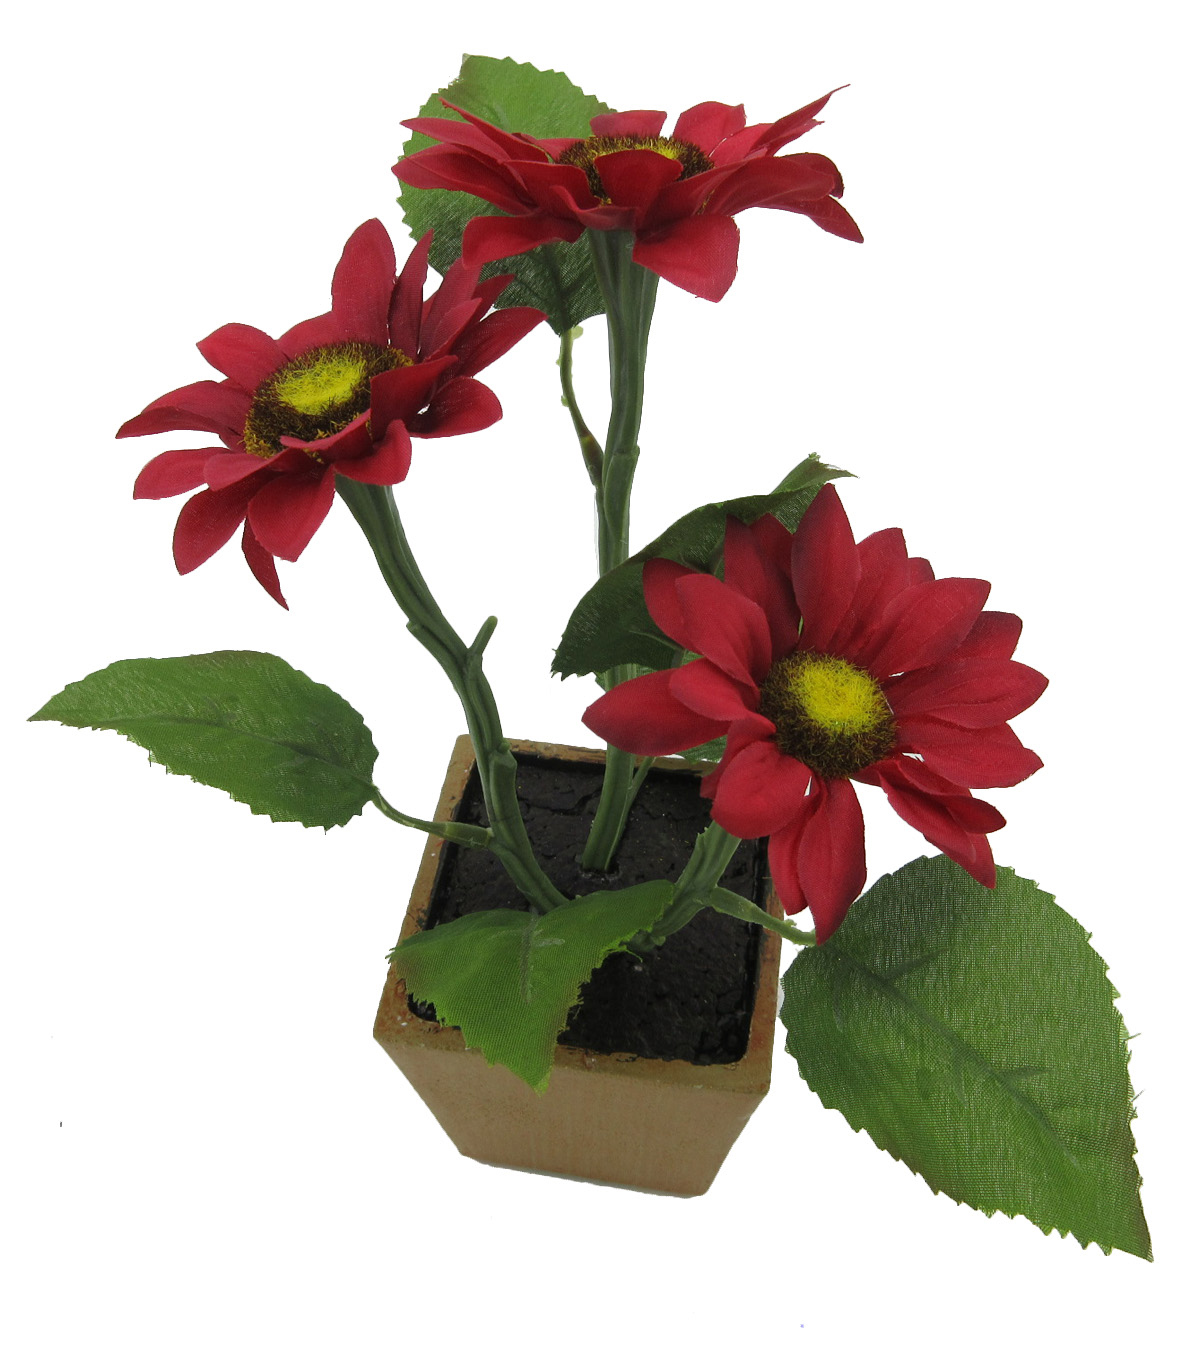 Blooming Autumn Mini Sunflower in Pot-Red